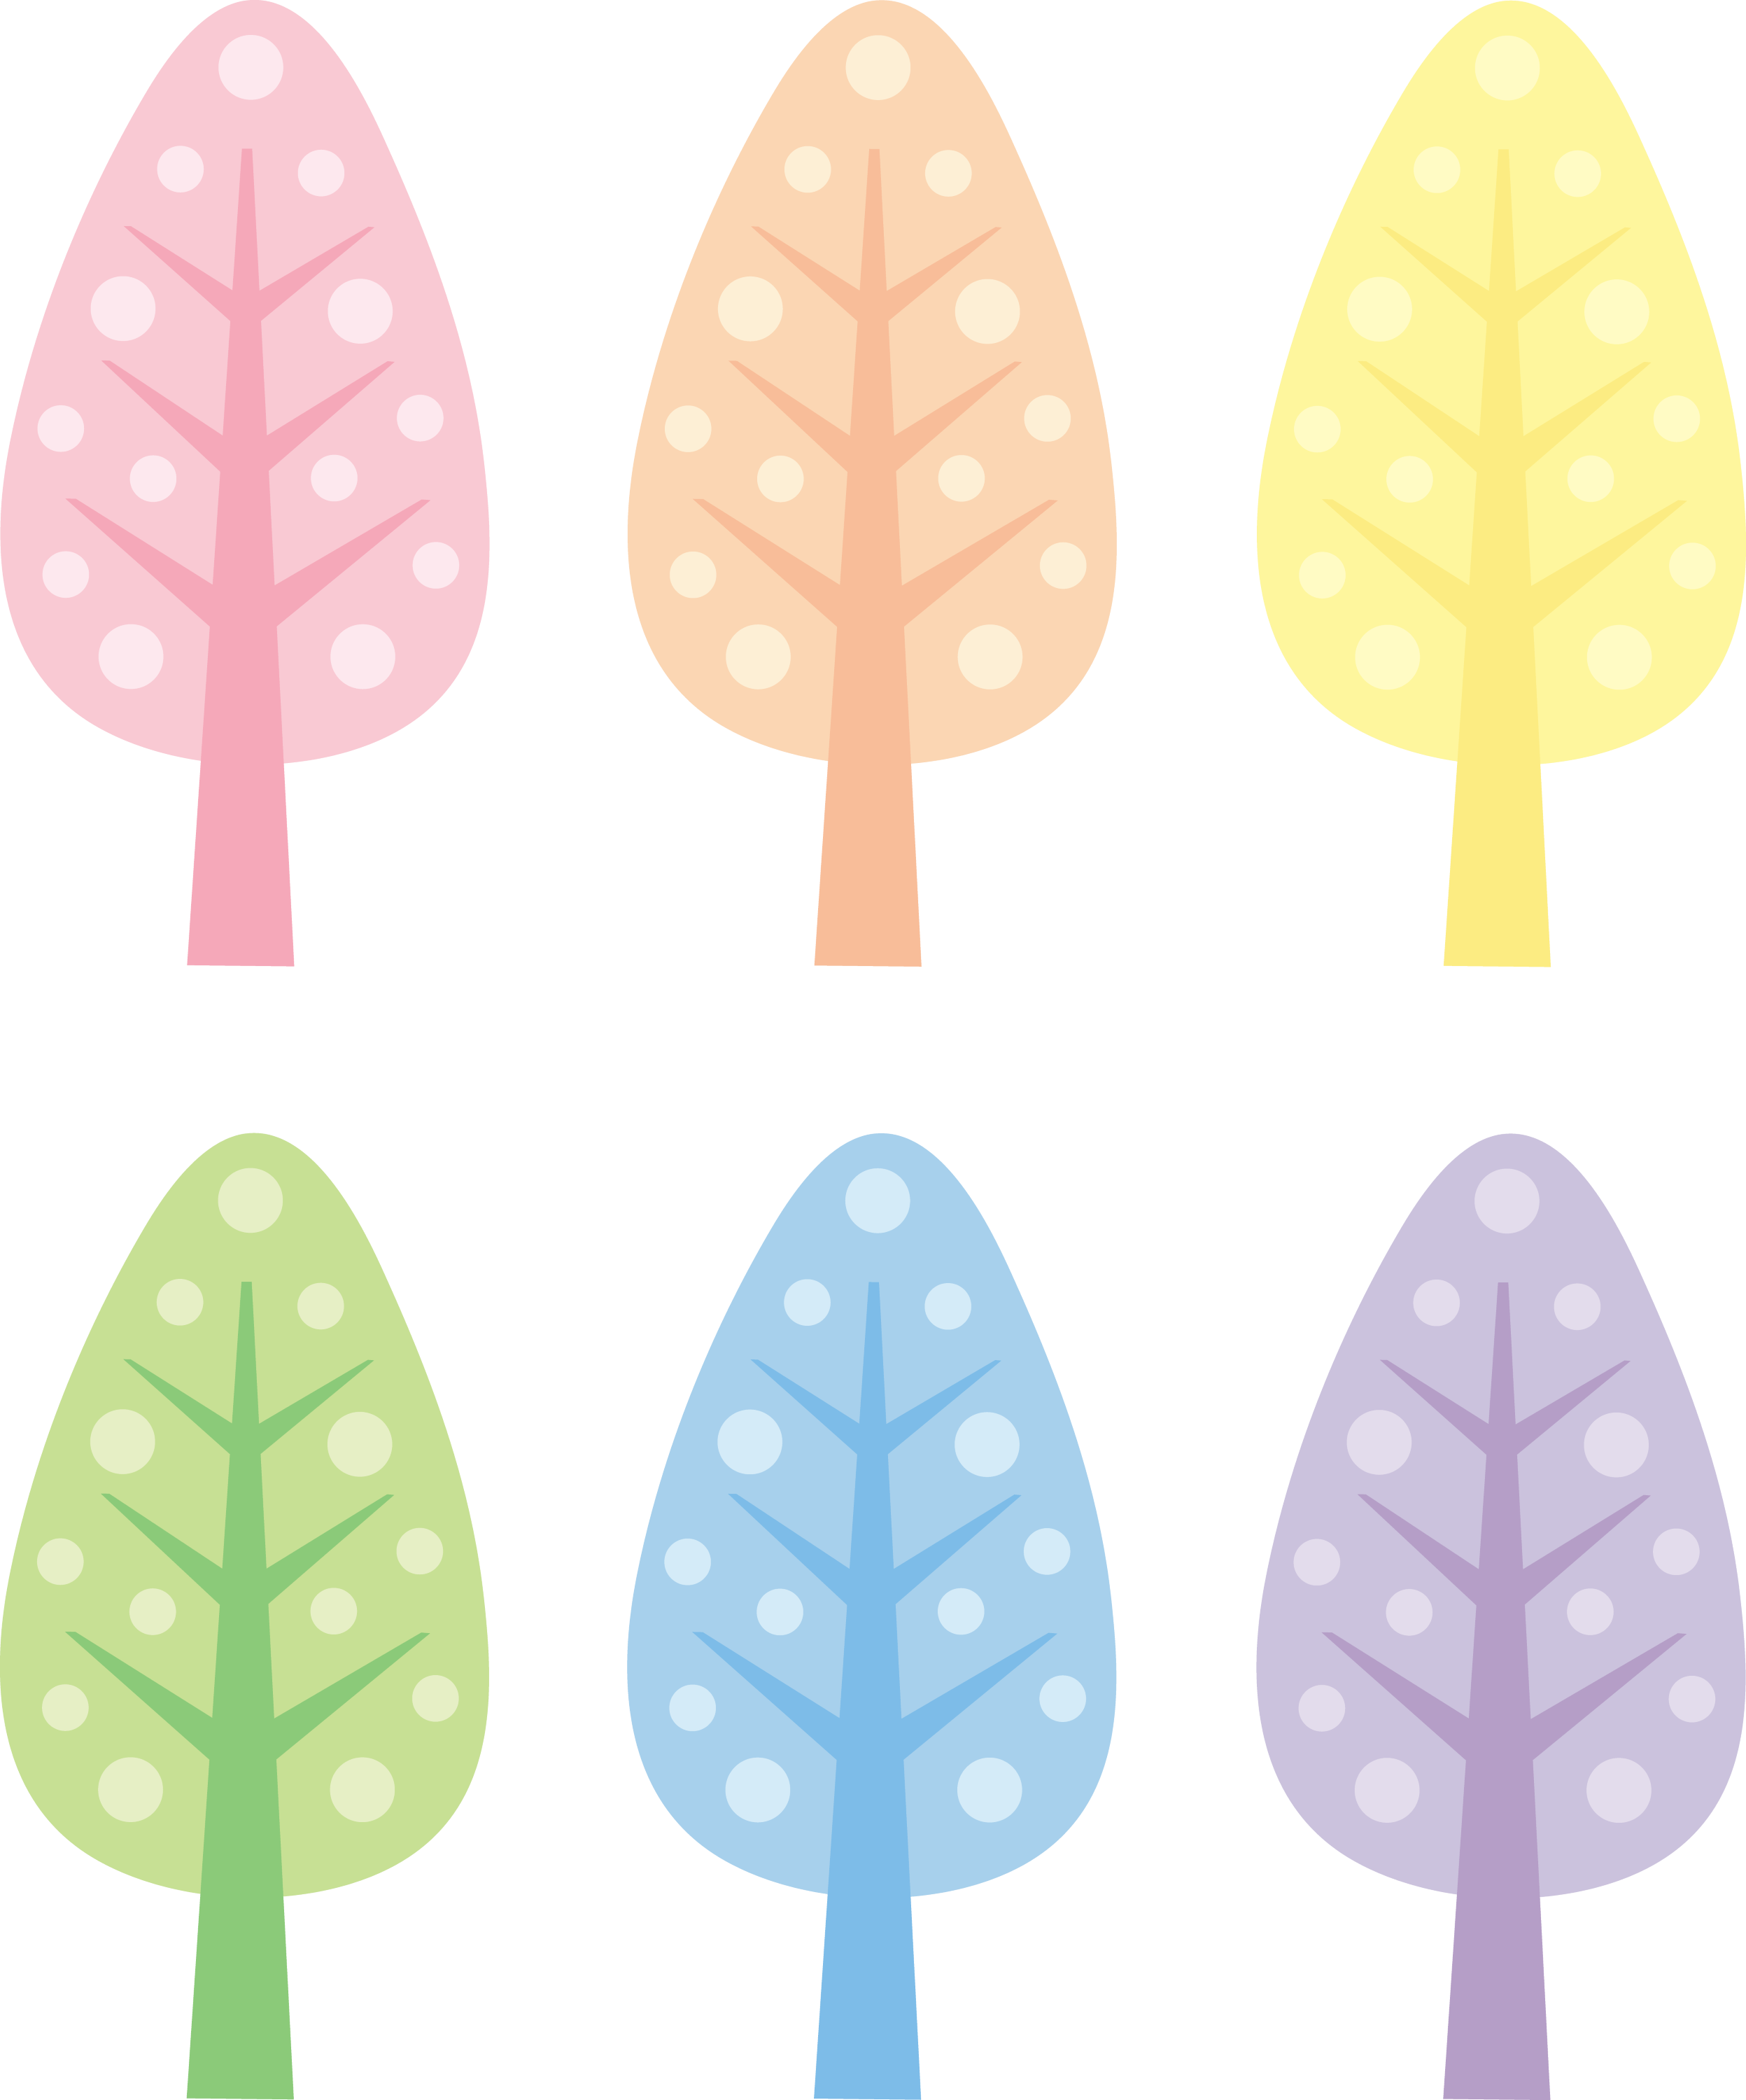 Cute Trees in Pastel Colors - Free Clip Art